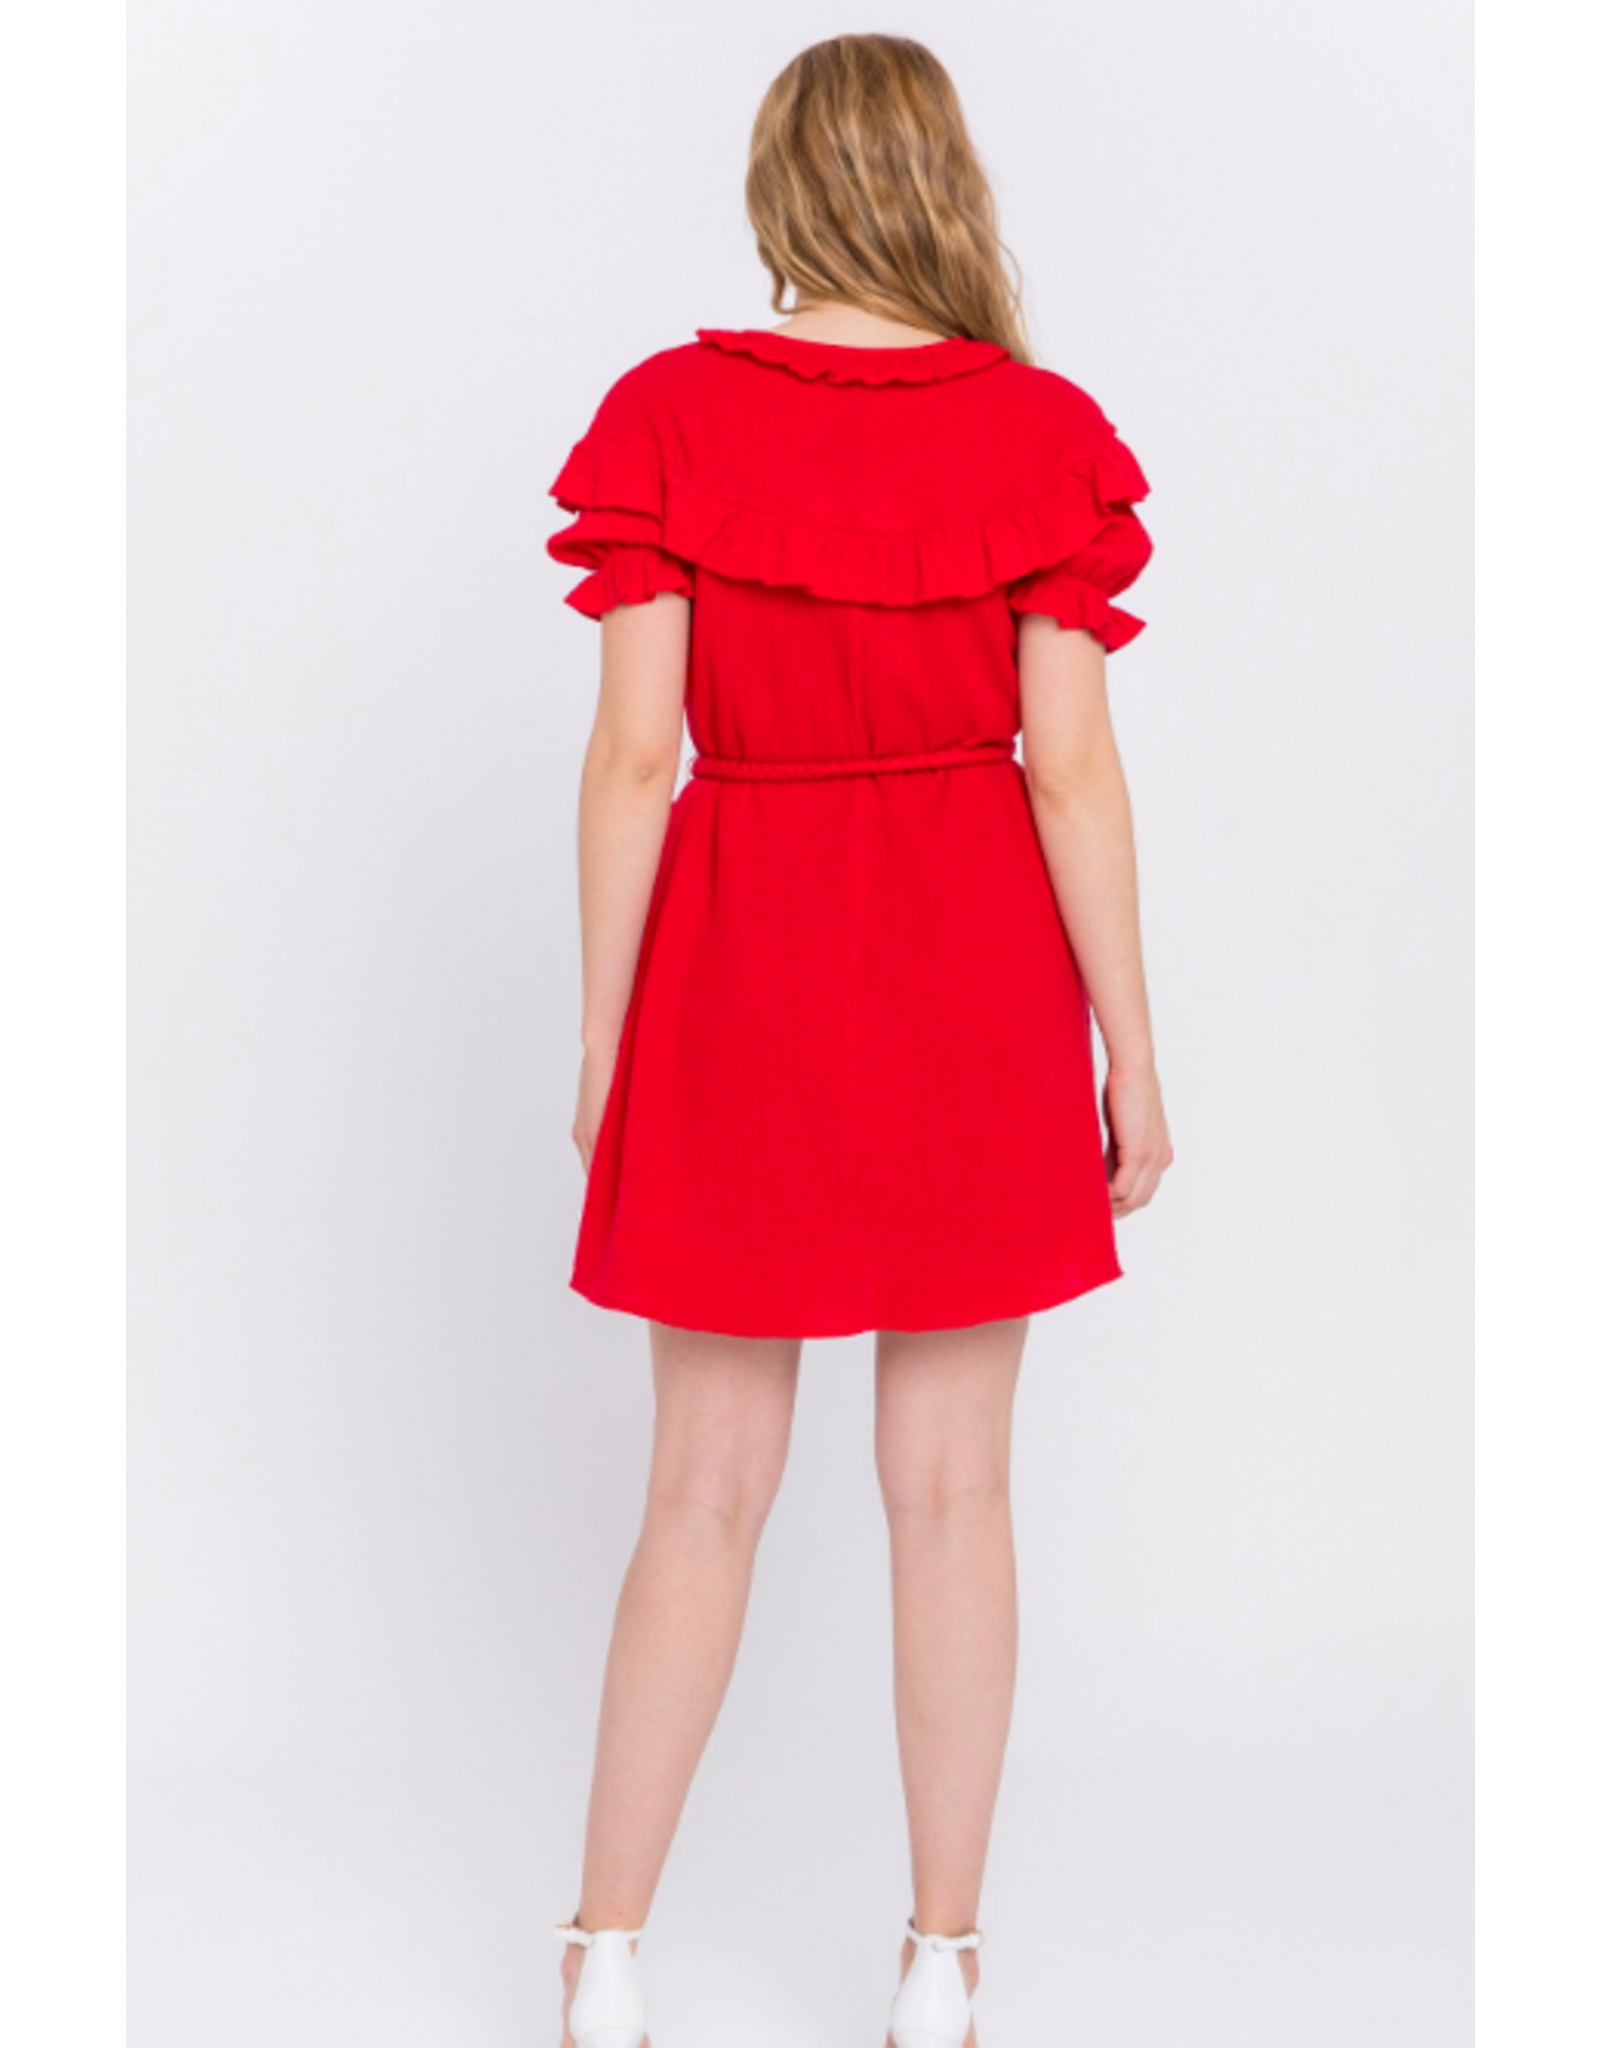 RUFFLED DRESS WITH BRAIDED TIE BELT